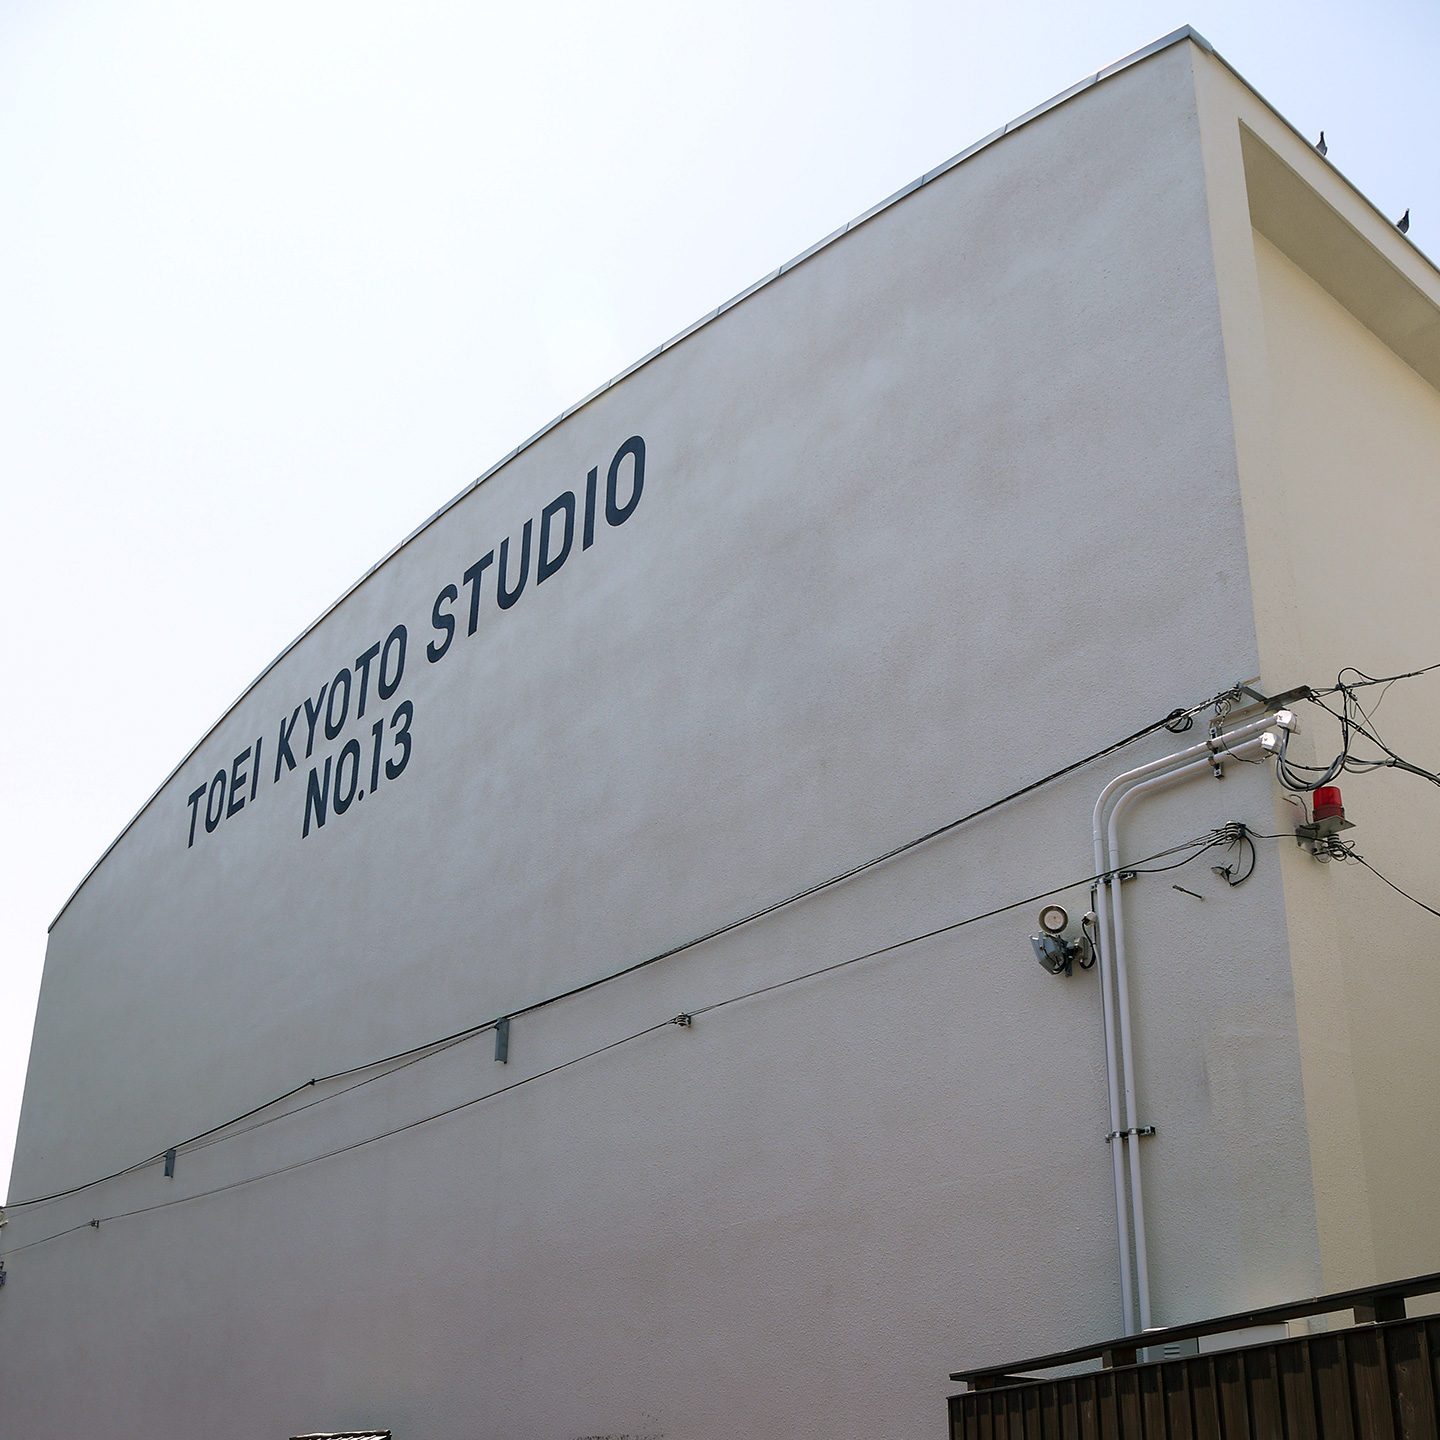 Japanese film lot studio 13